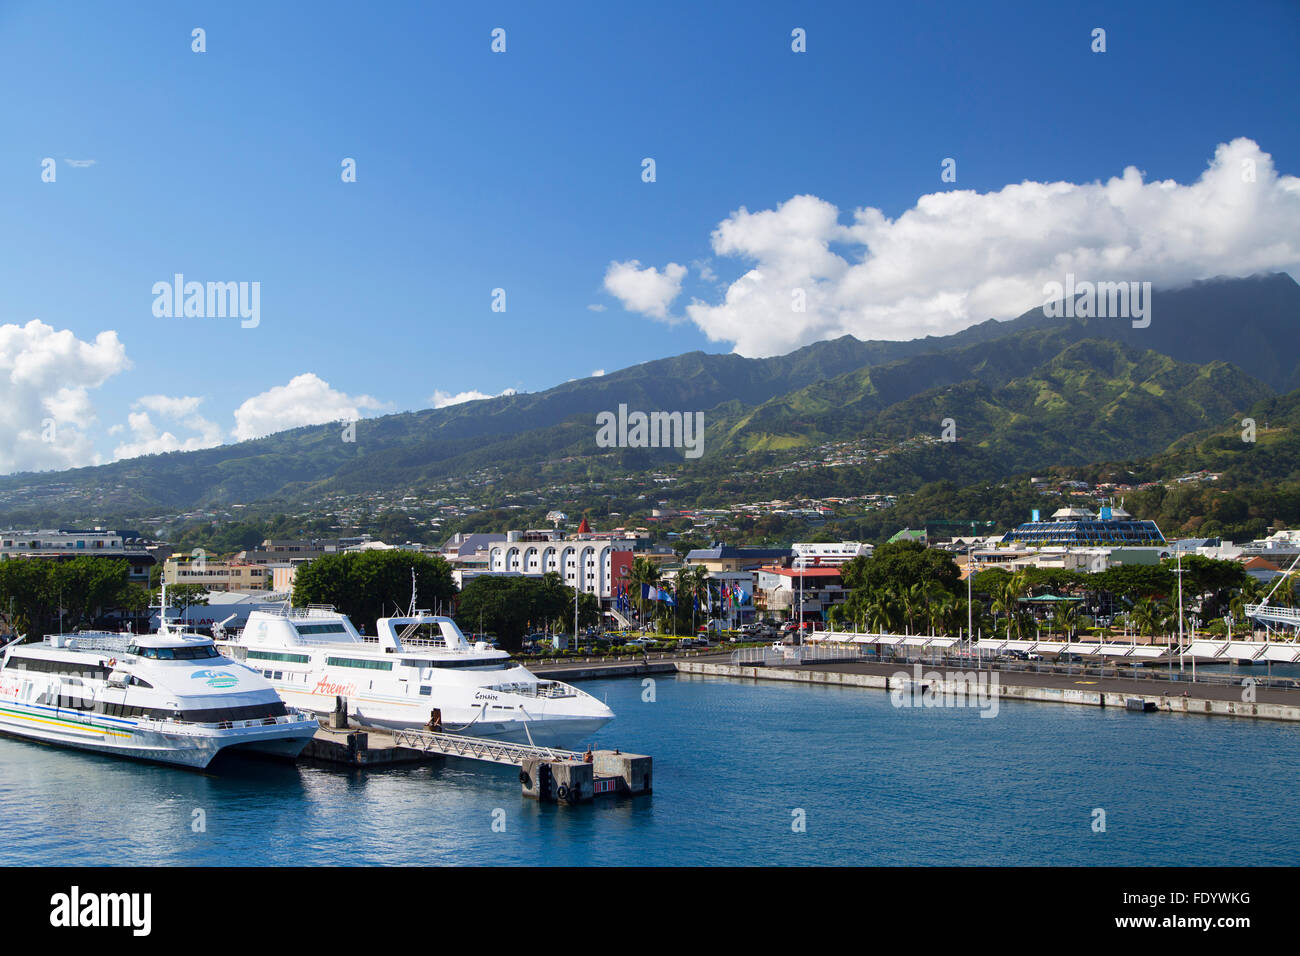 Boats in harbour, Pape'ete, Tahiti, French Polynesia - Stock Image